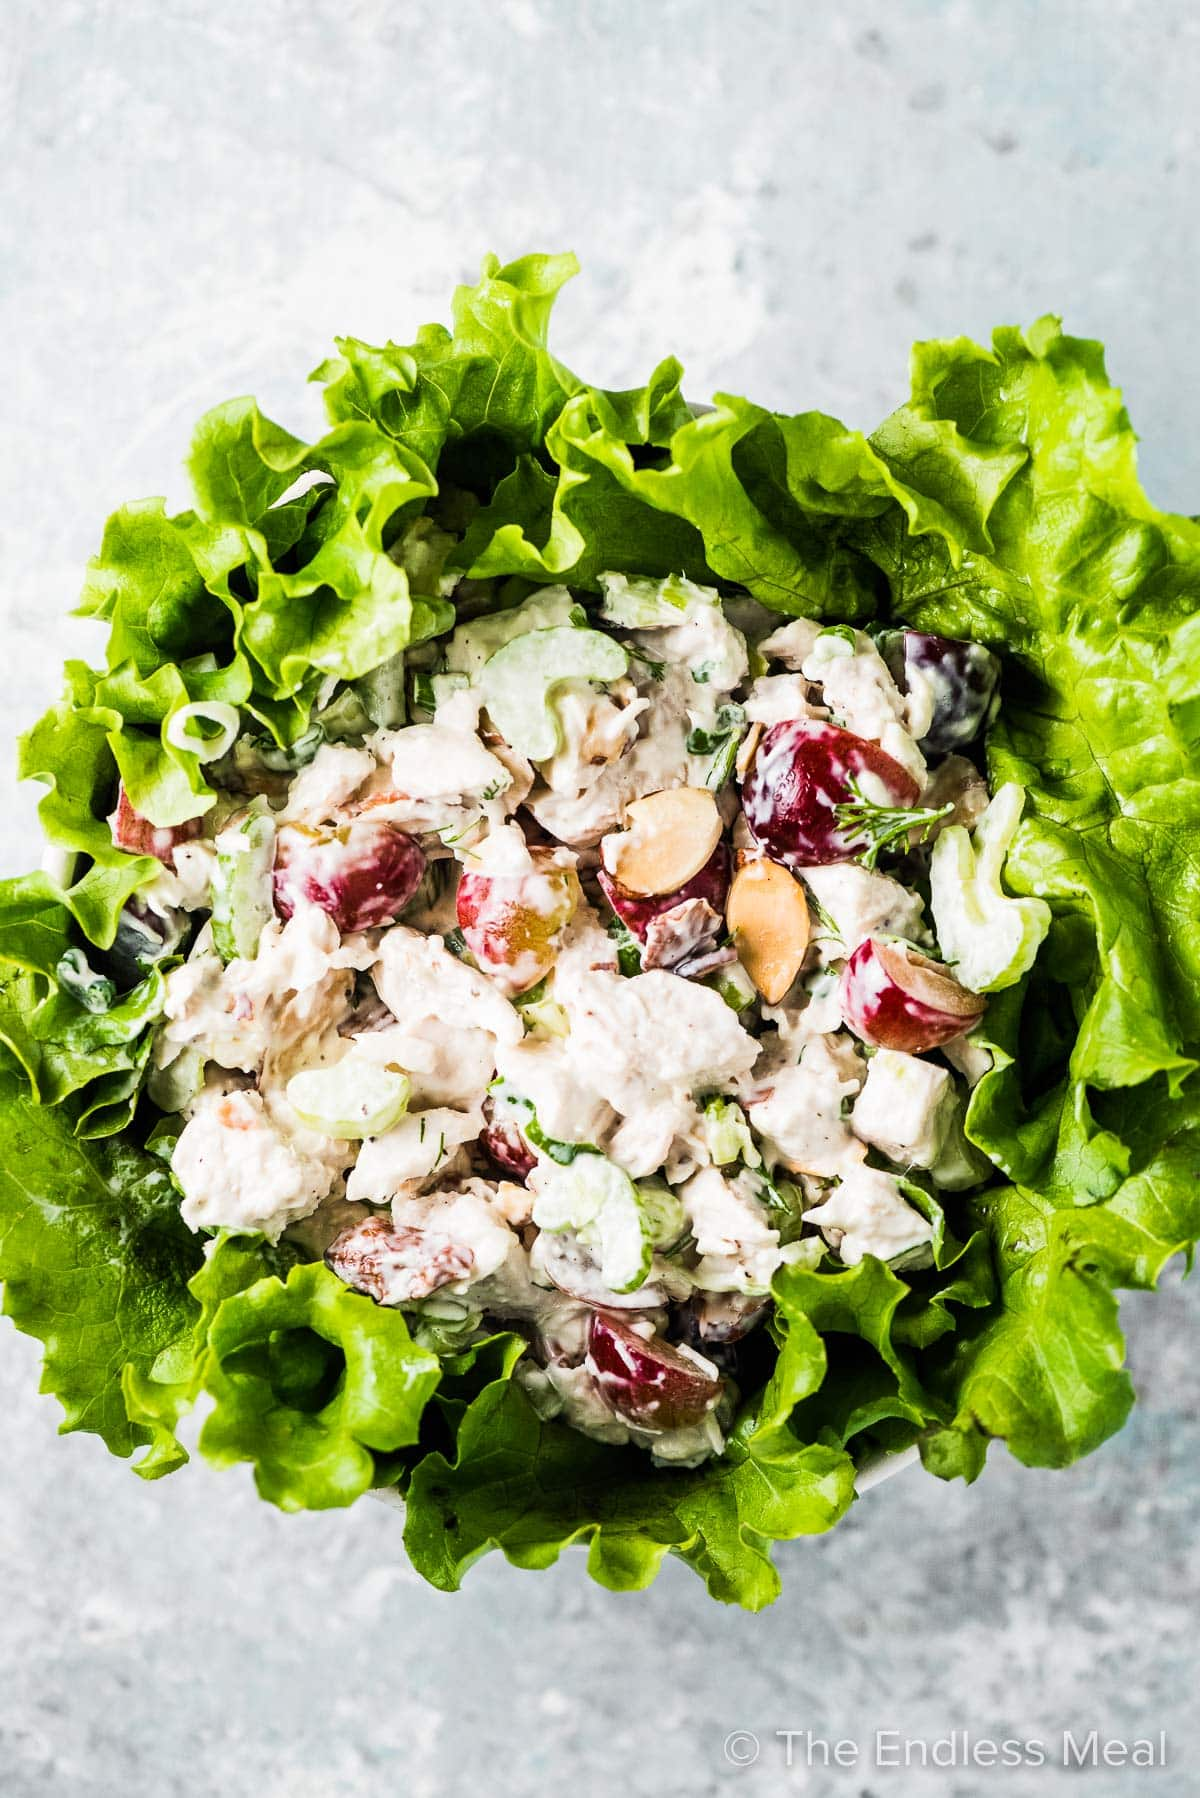 Lettuce greens in a bowl topped with chicken salad.